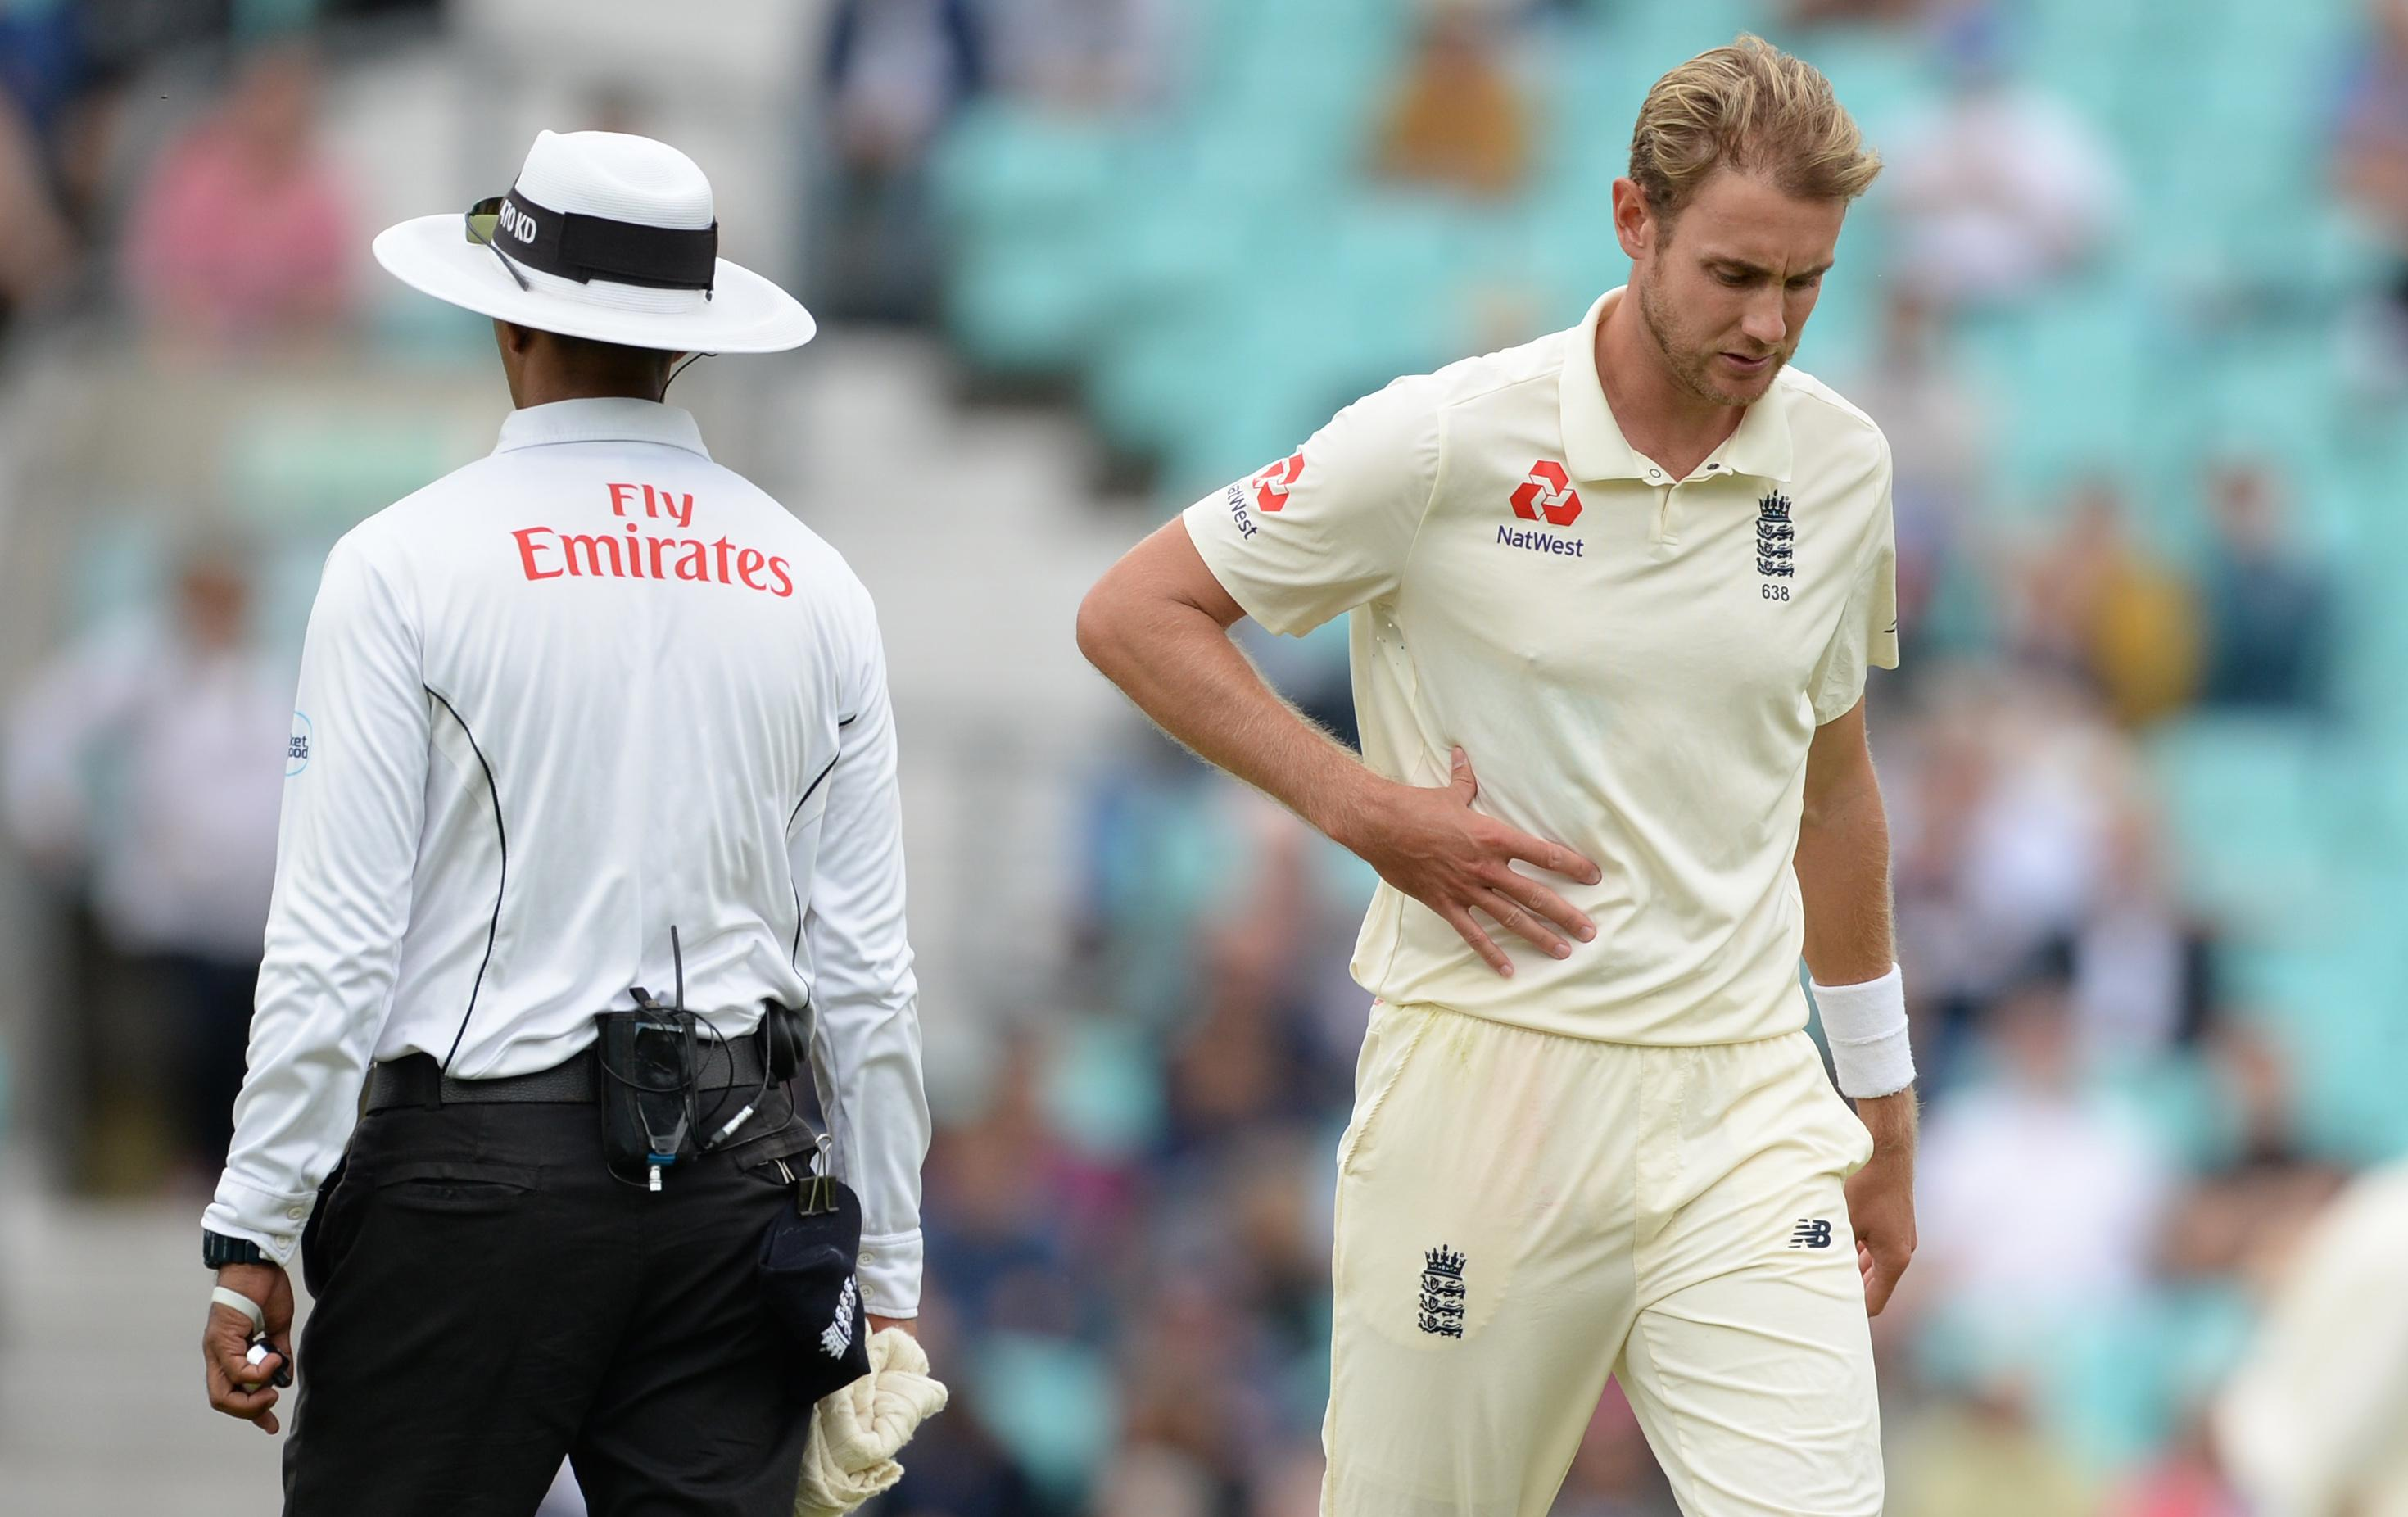 Stuart Broad is set to be dropped for England's tour of Sri Lanka this winter